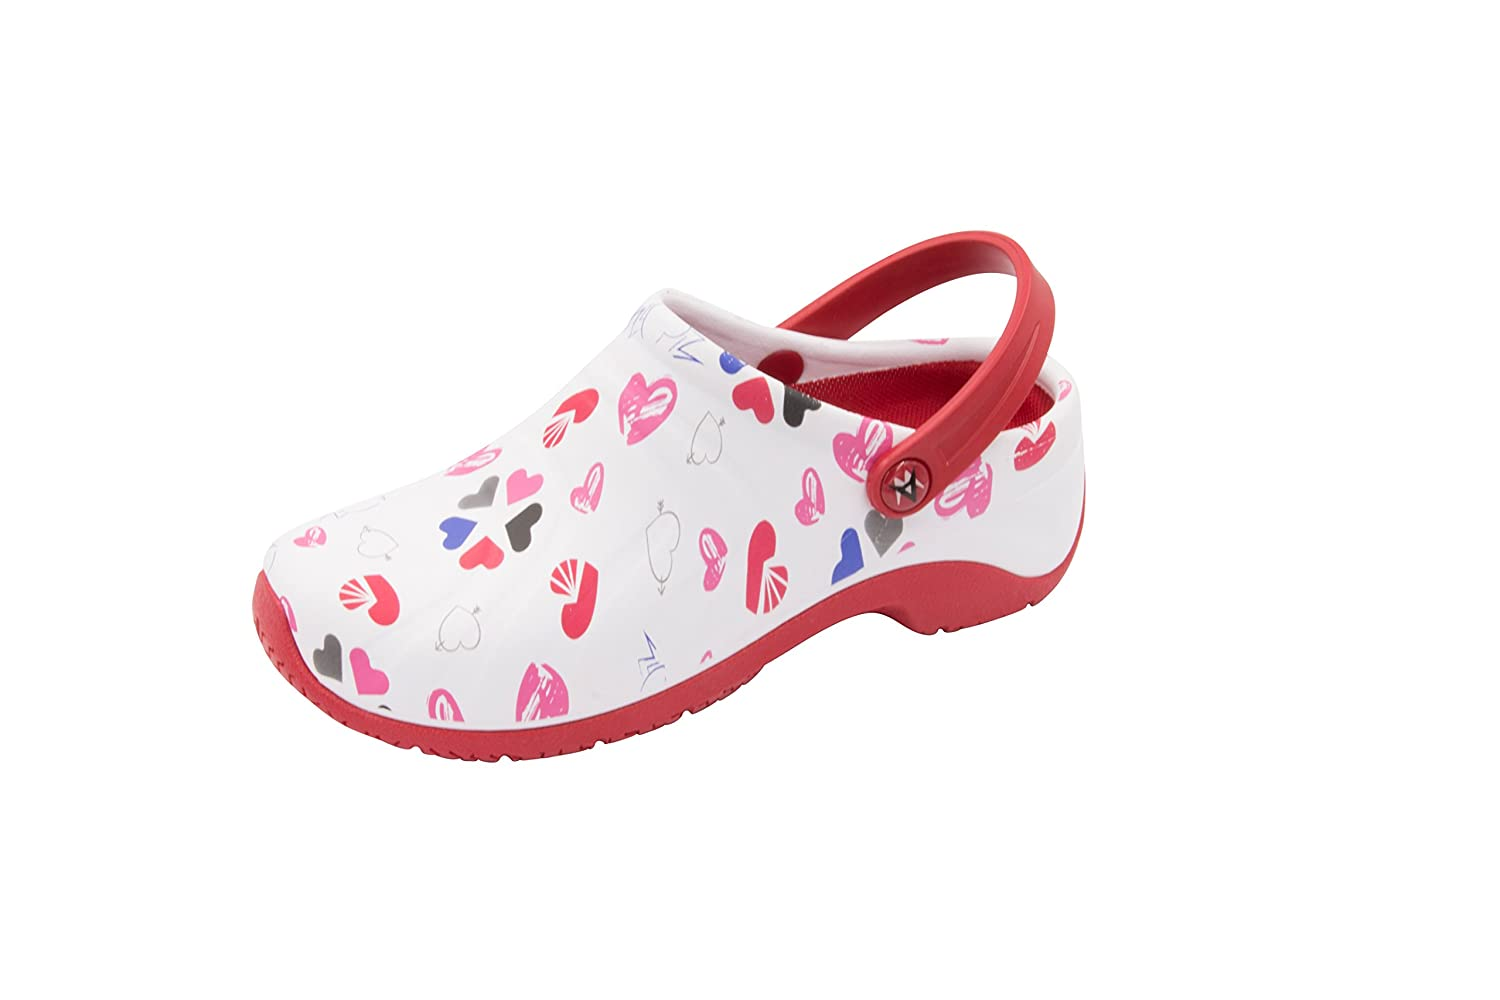 Anywear レディース B078TMG8BZ 6|Multi Heart/White/Red Multi Heart/White/Red 6